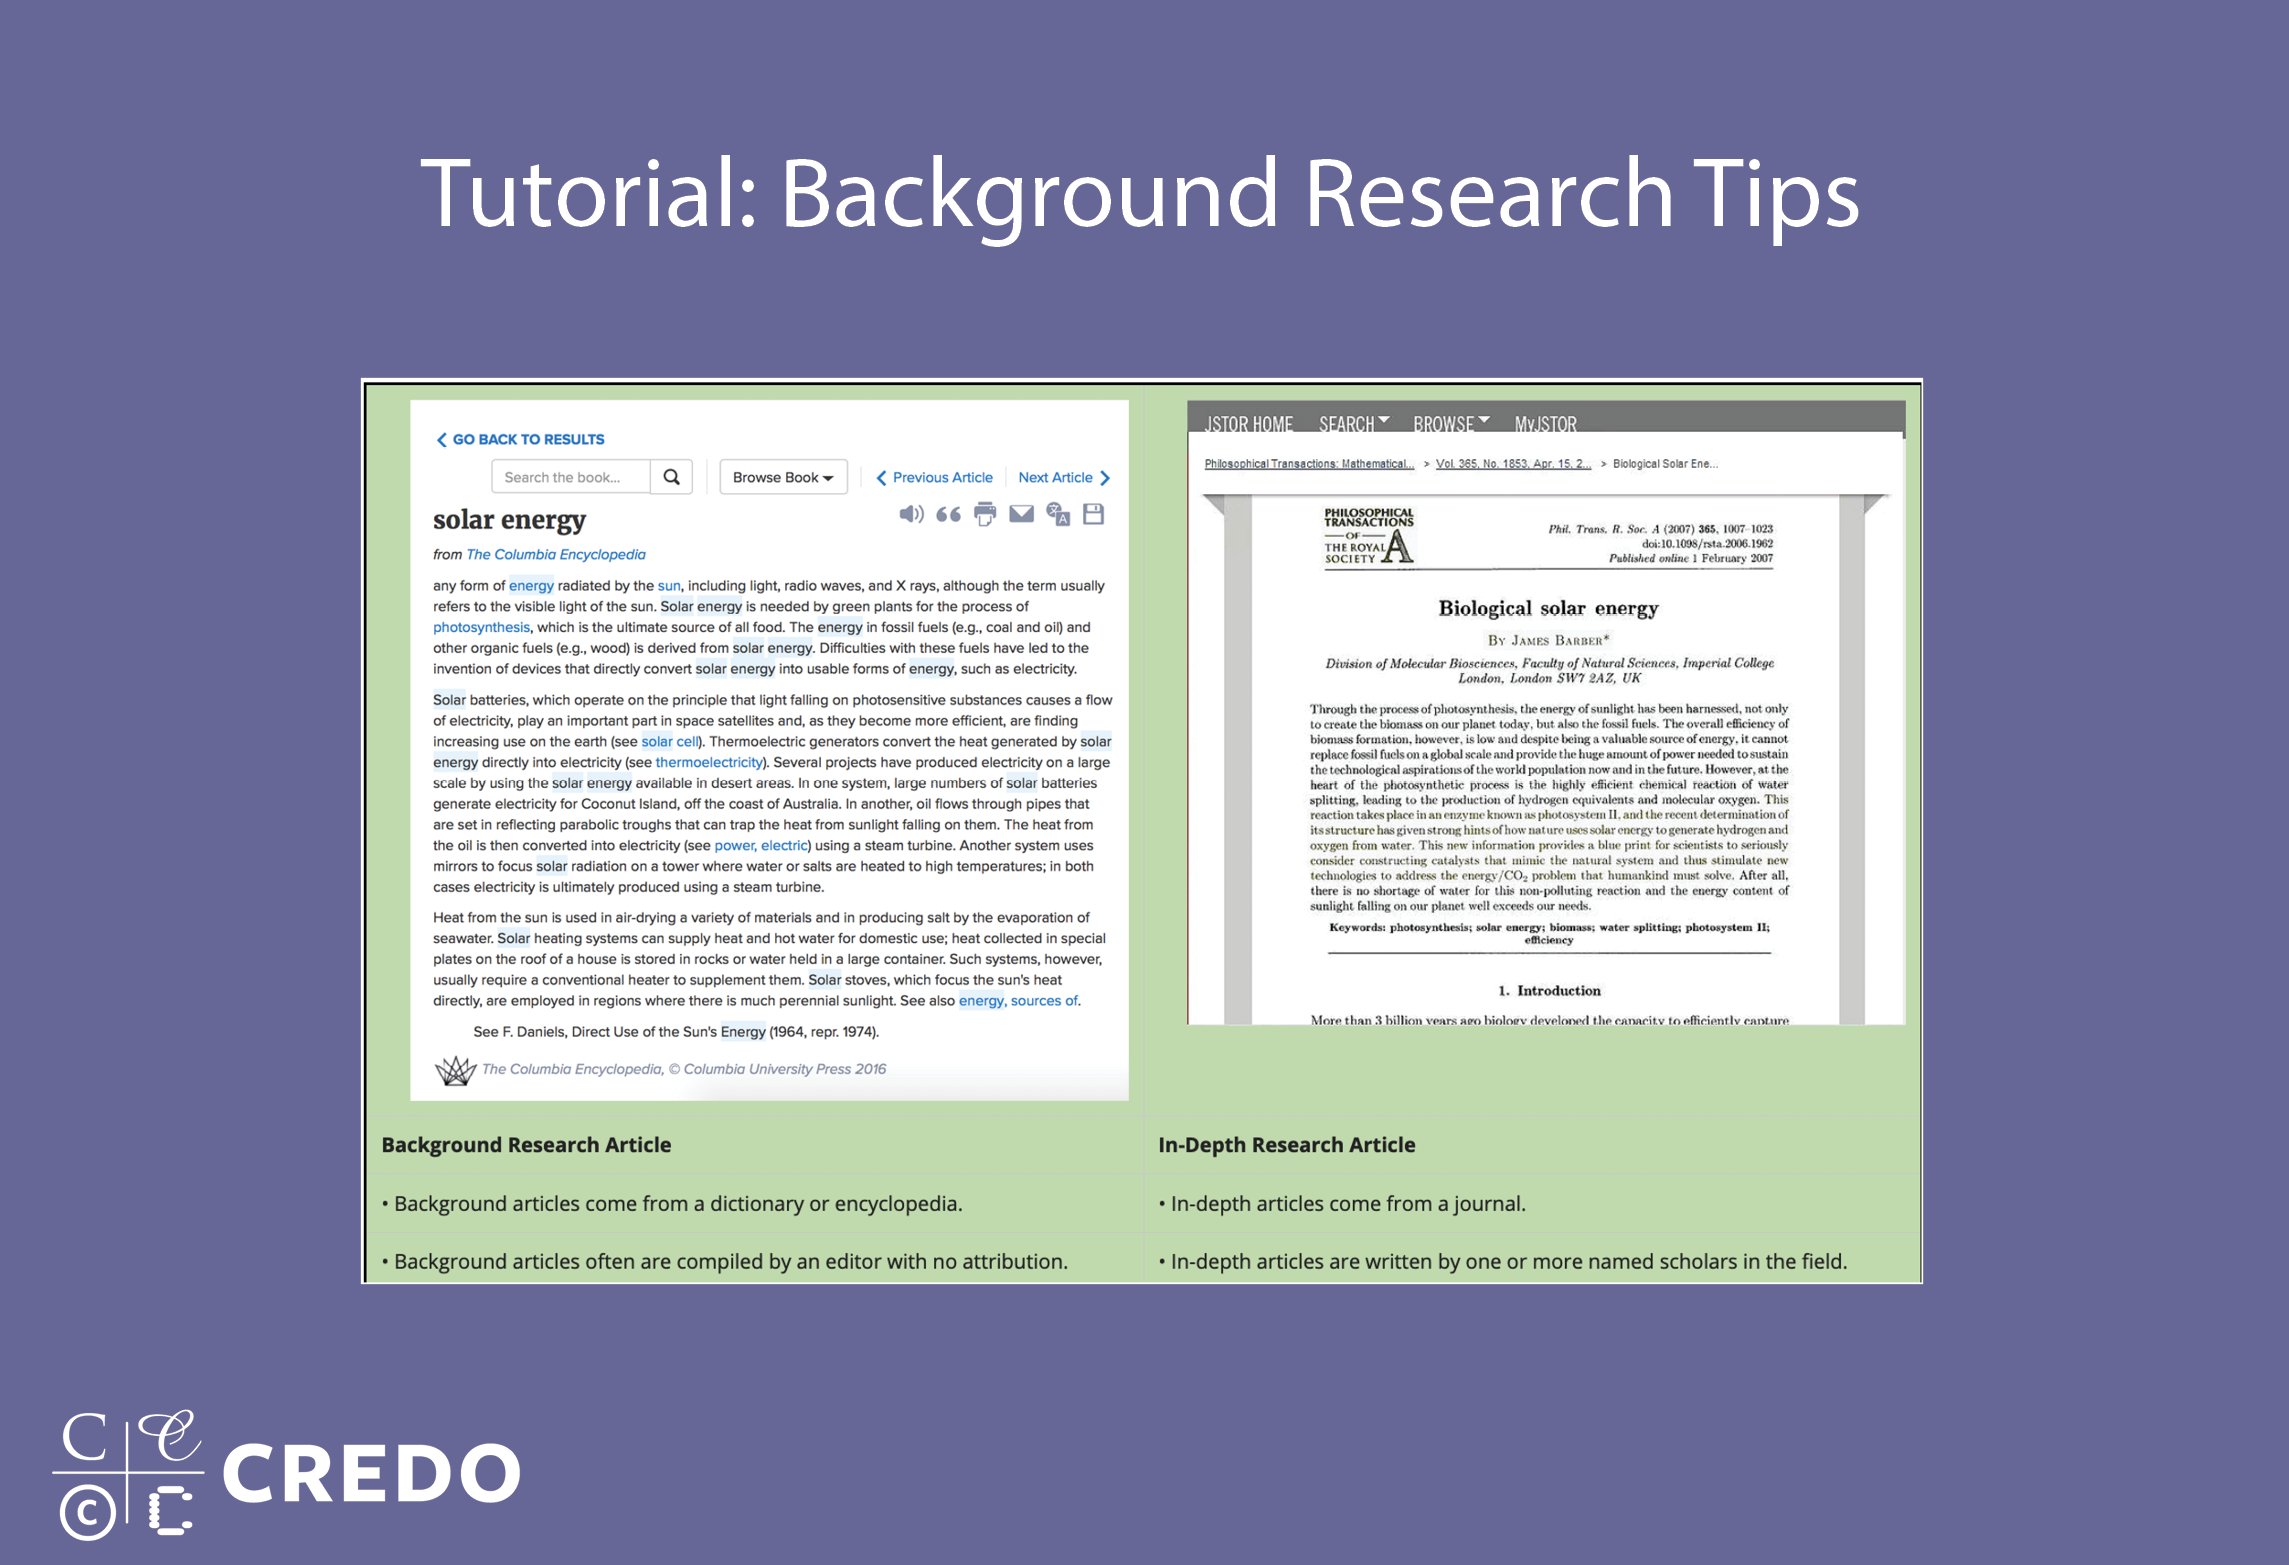 Tutorial: Background Research Tips